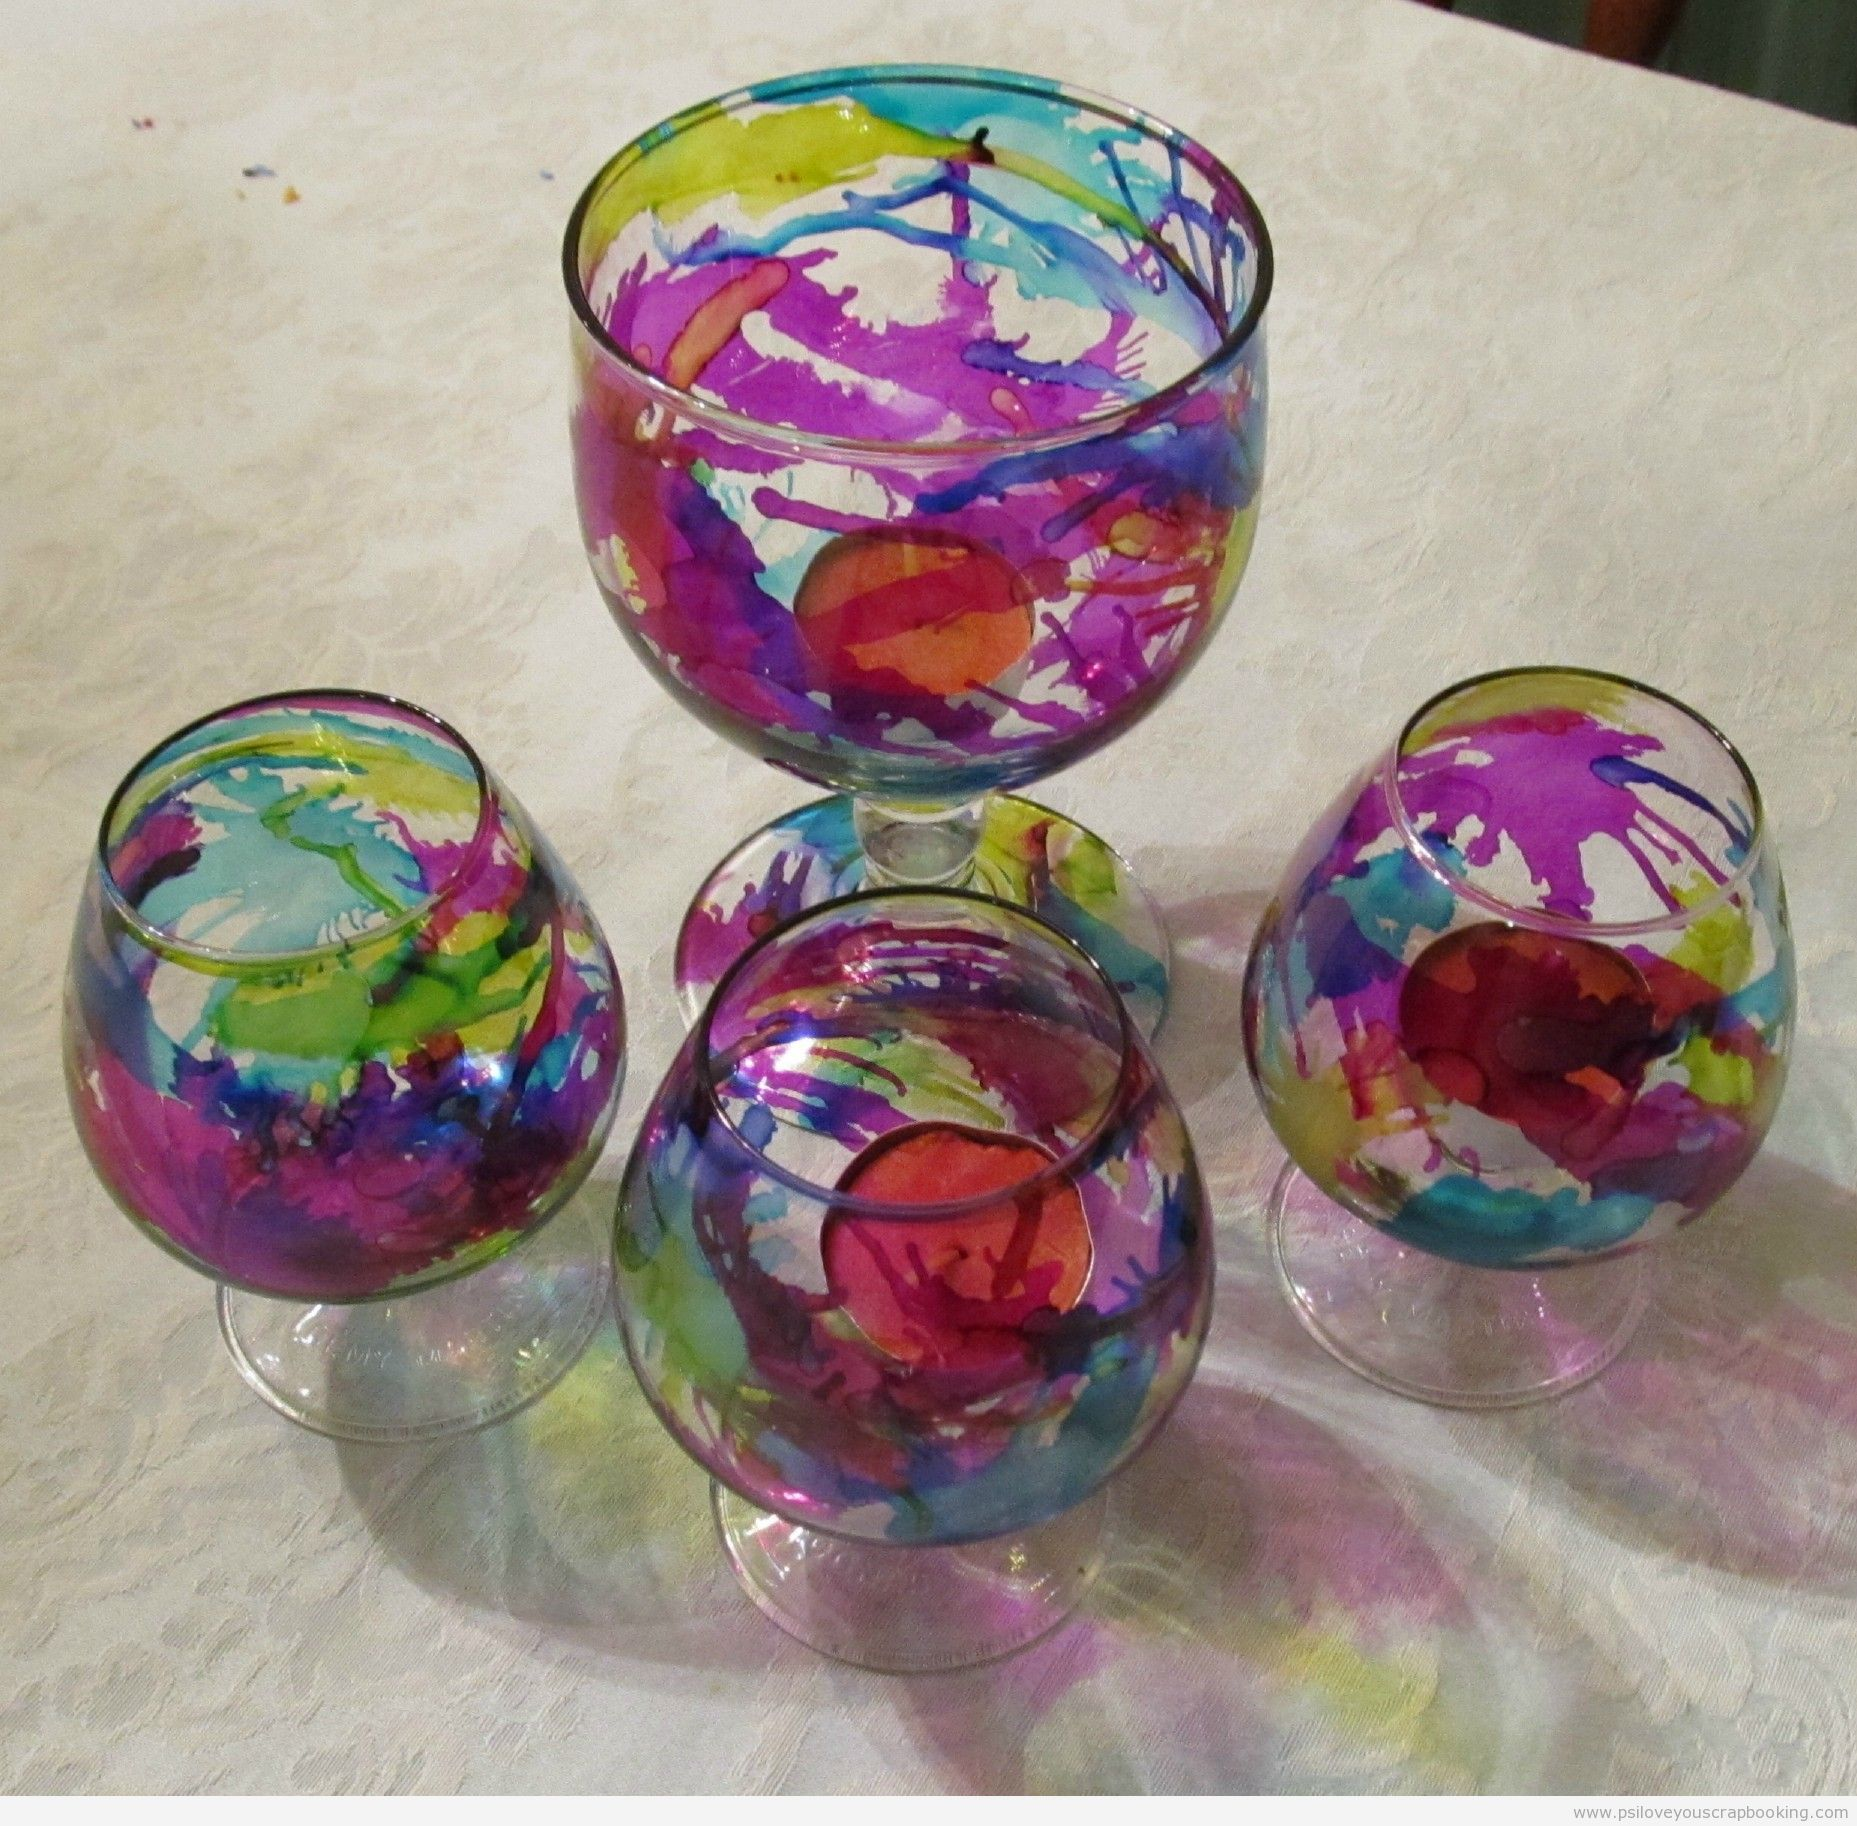 Using Alcohol Ink on Glass - PS I Love You #alcoholinkcrafts